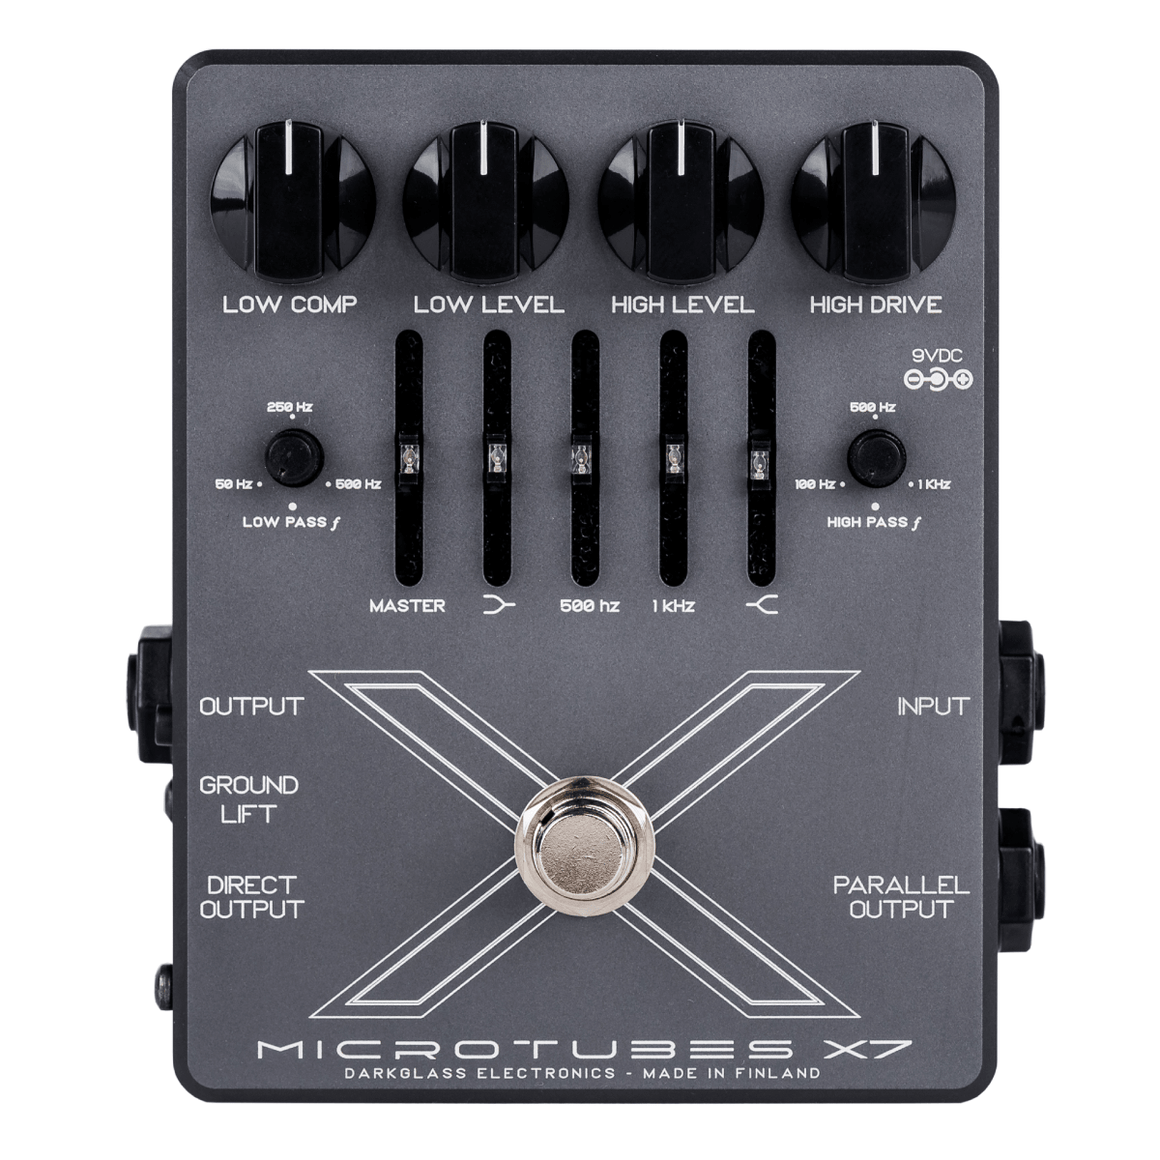 Darkglass Electronics X7 Distortion & EQ